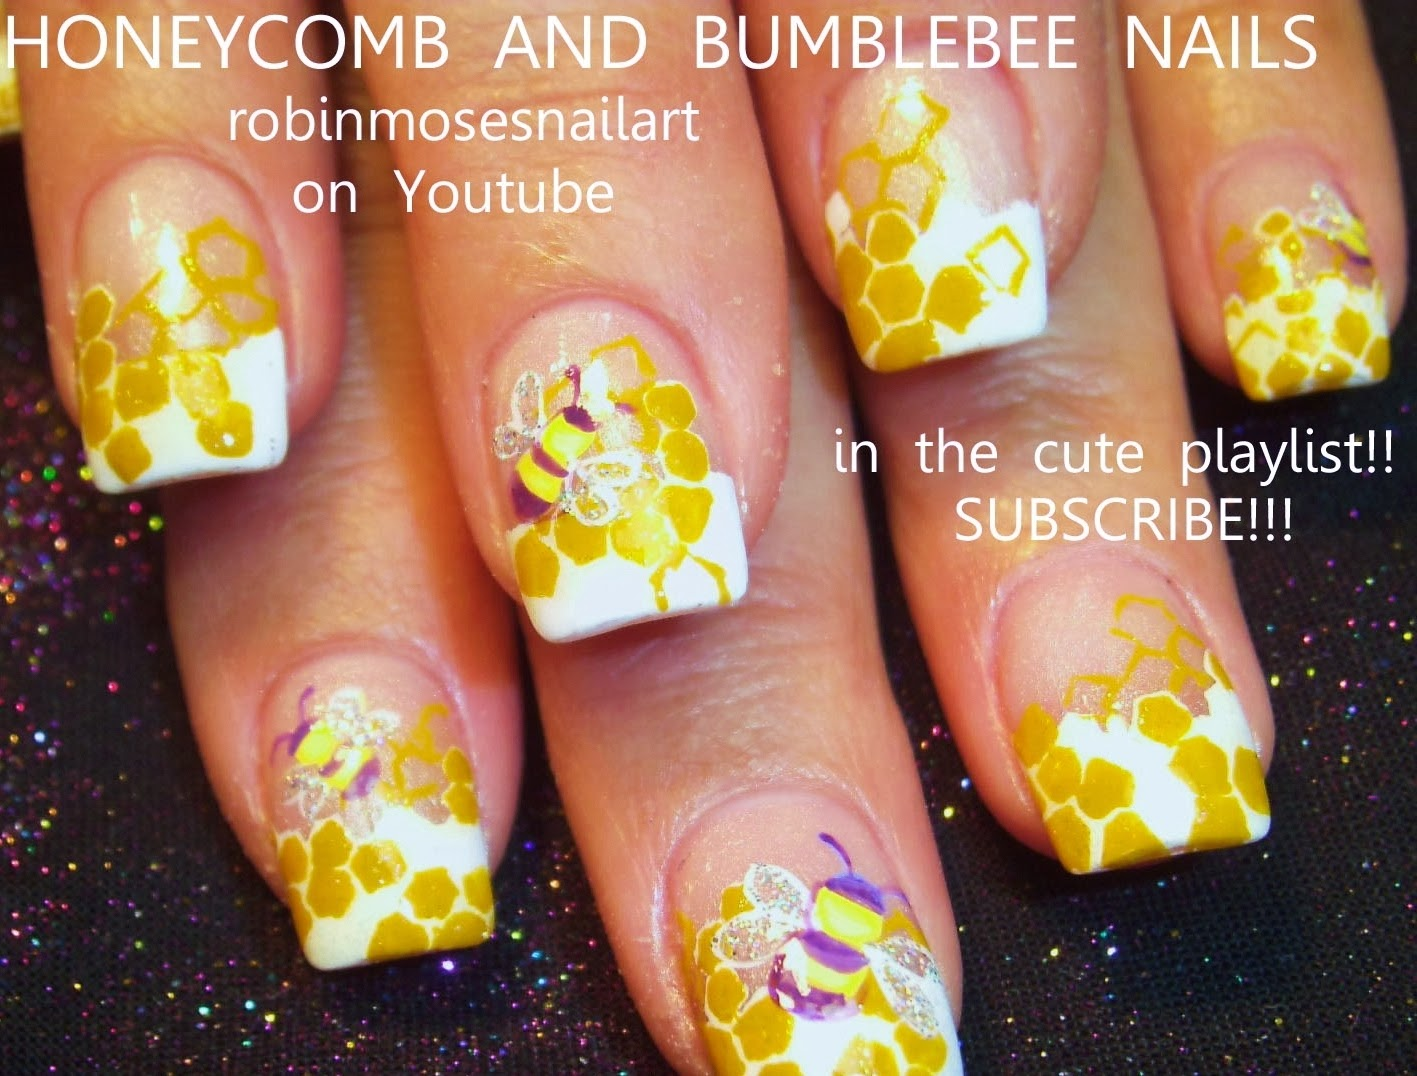 Robin moses nail art pastel leopard print queen bee design nail art hot party girl nails sexy nails prinsesfo Images